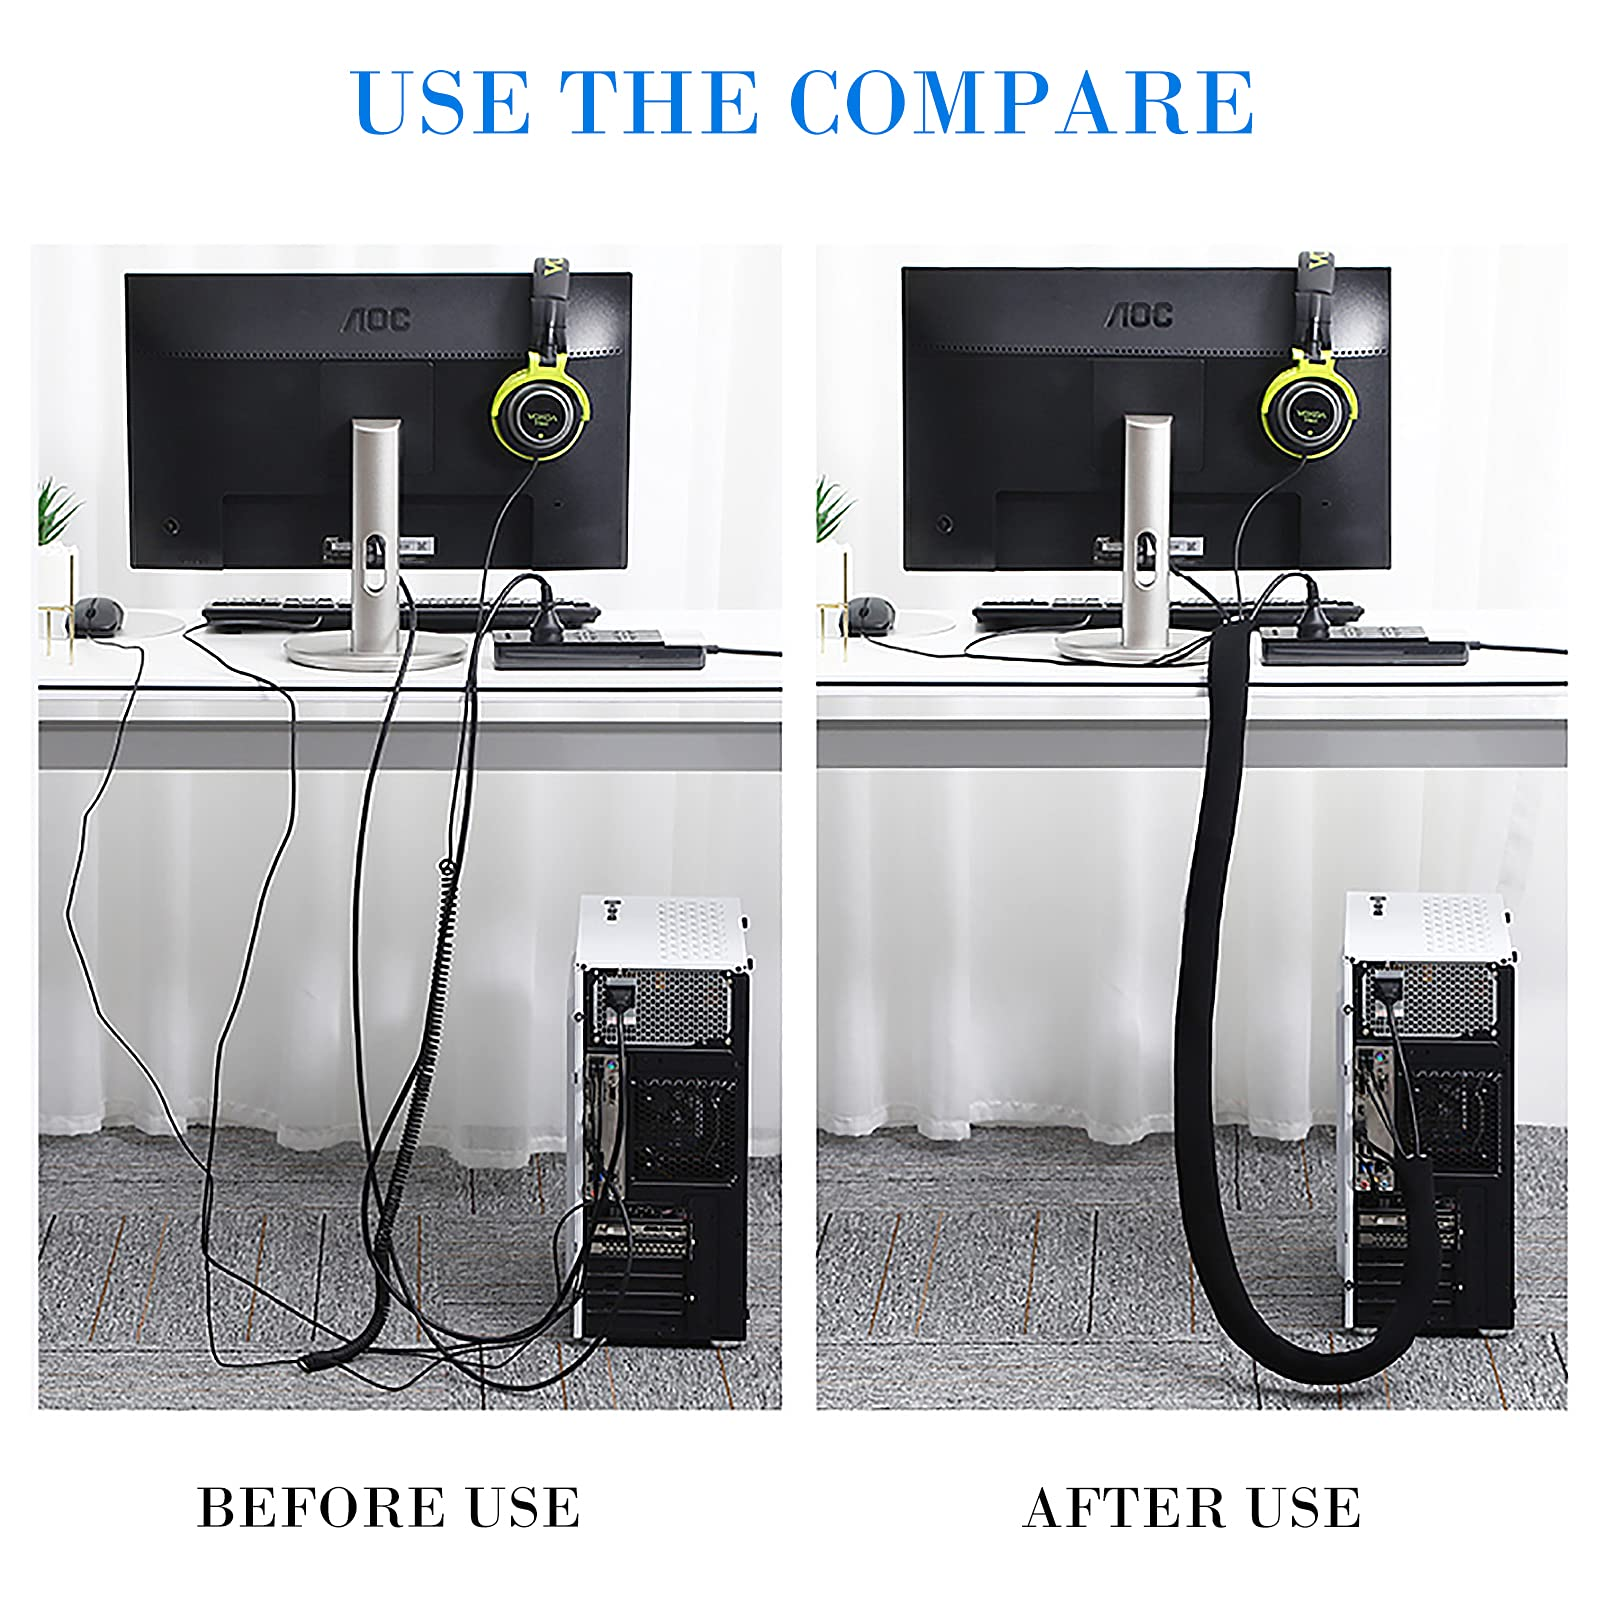 Bestfy Cord Organizer System Cable Management Sleeve, 19.5 inch, Wire Cover with Zipper, Cable Wrap, Cord Sleeves for TV, Computer, Office, Home Entertainment, 4 Pack